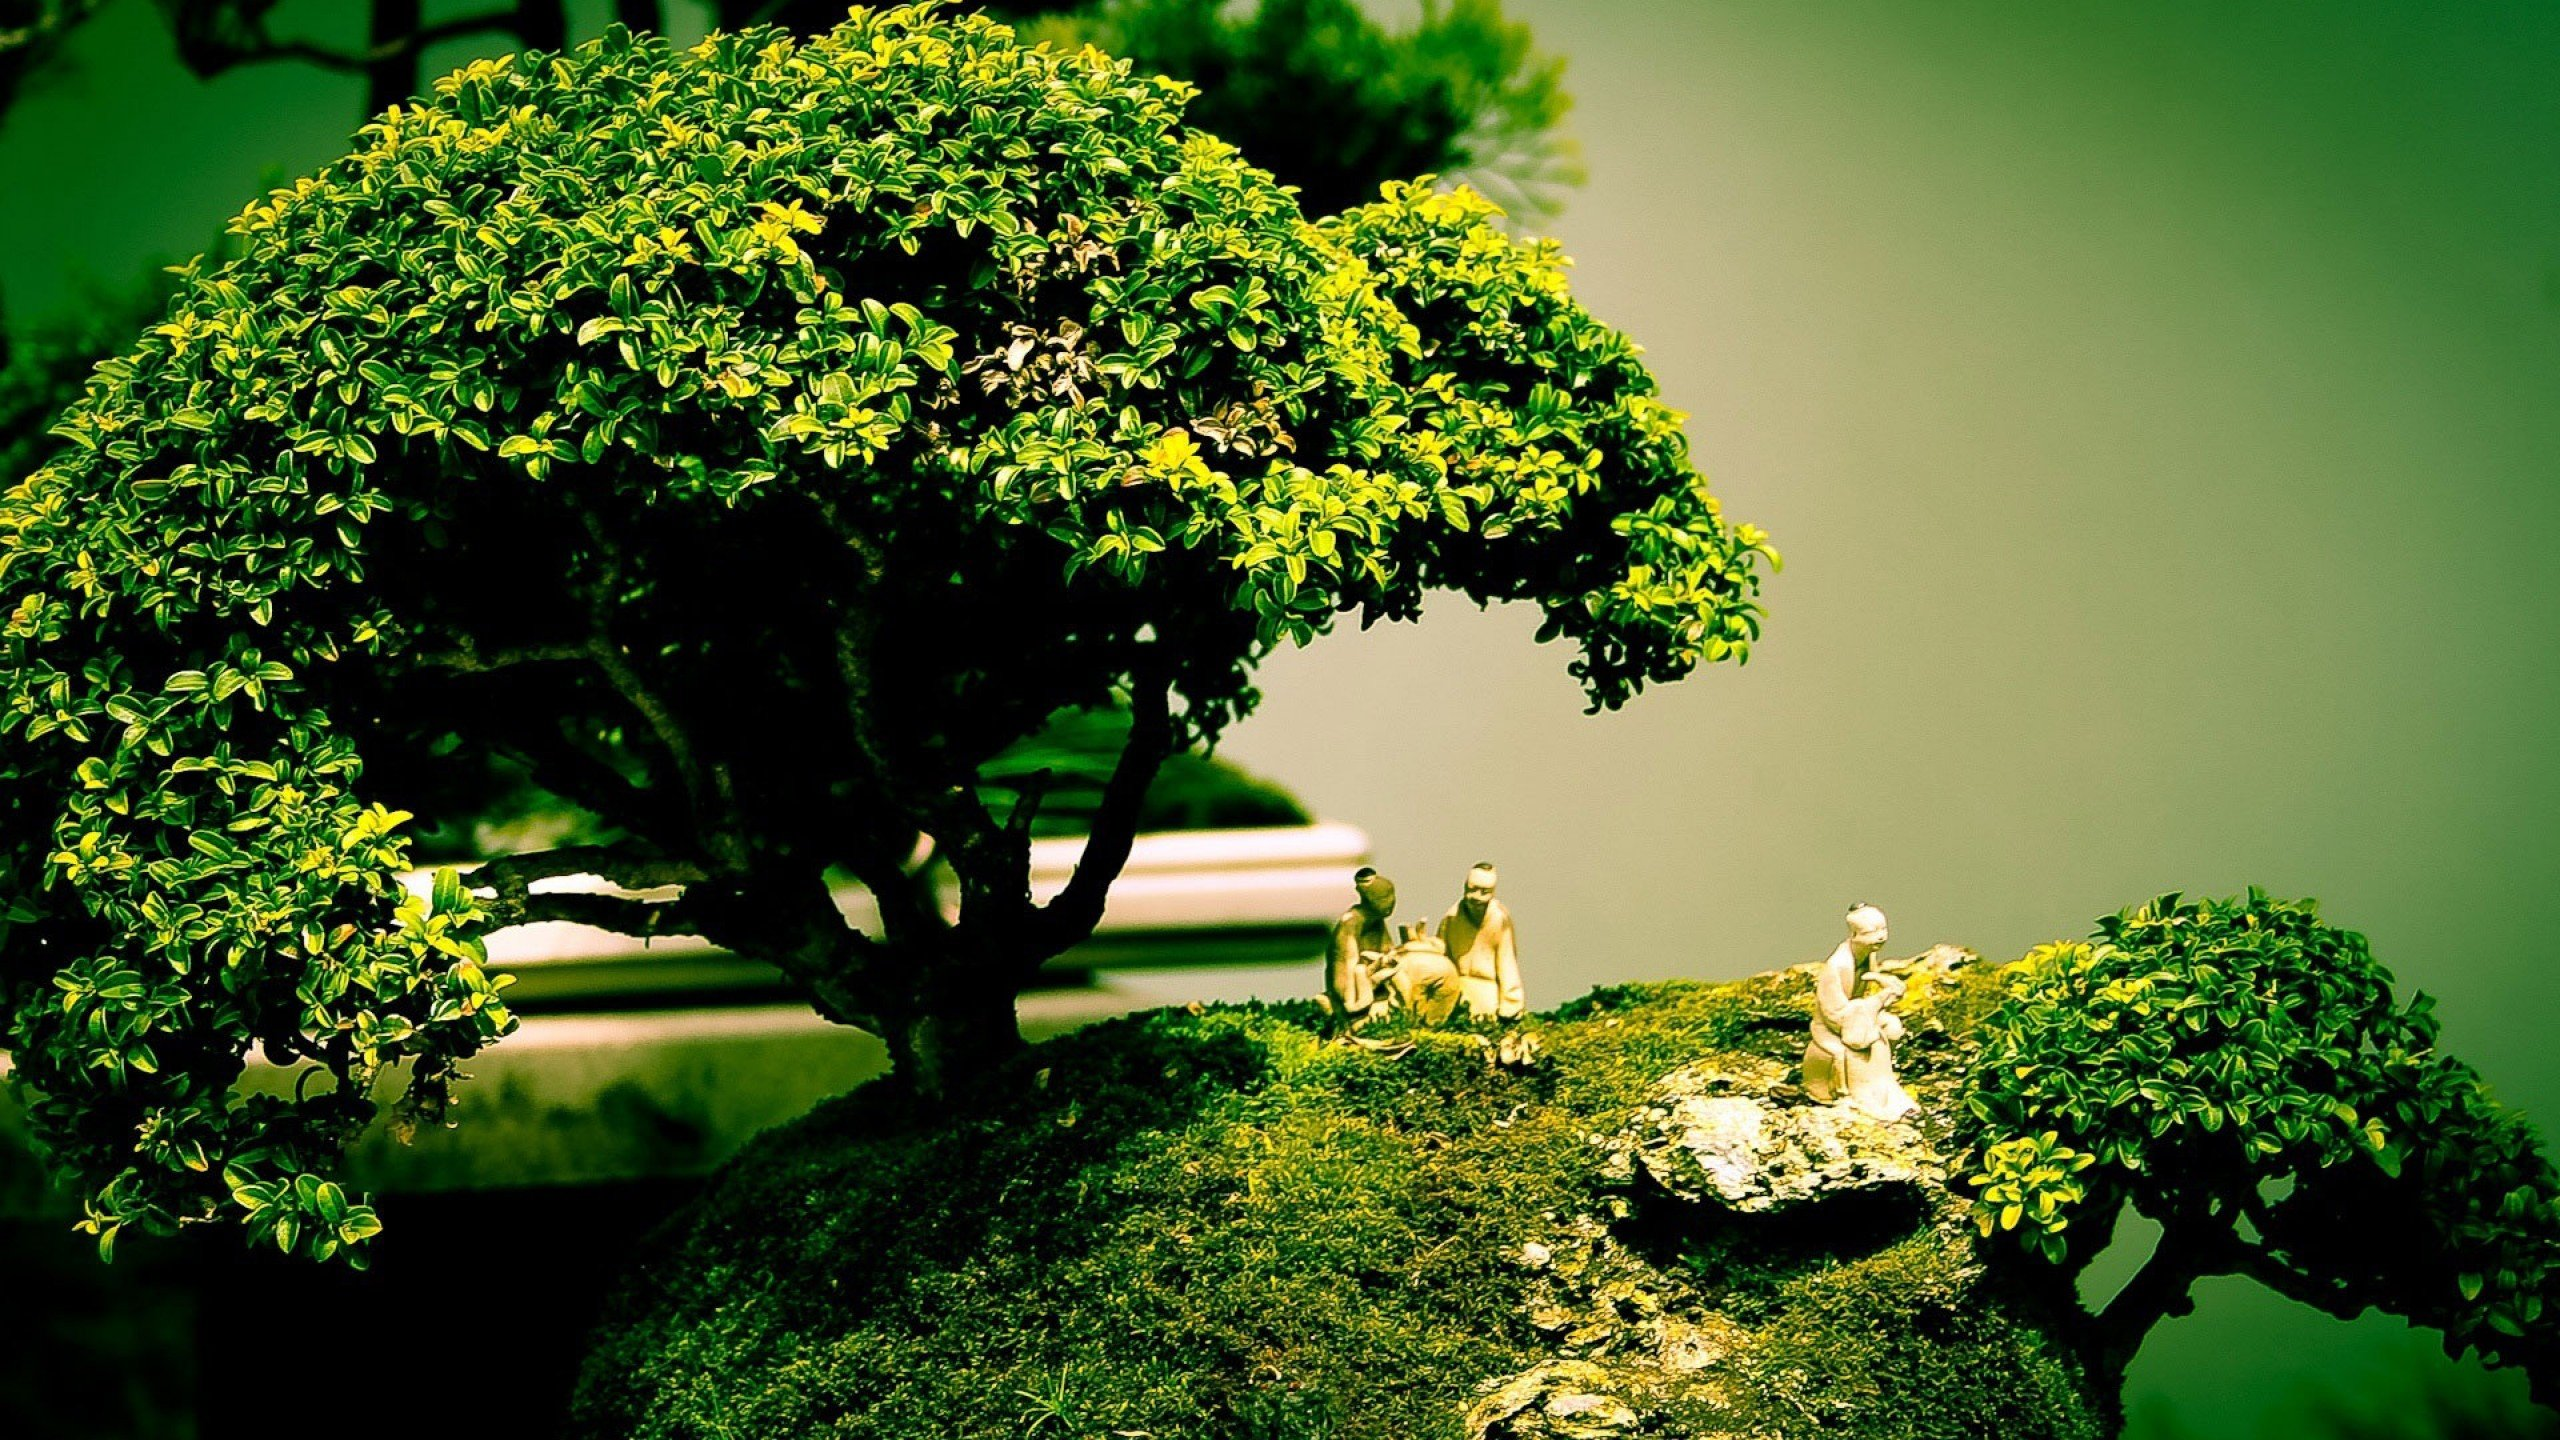 wallpaper.wiki-bonsai-tree-cool-images-desktop-nature-widescreen